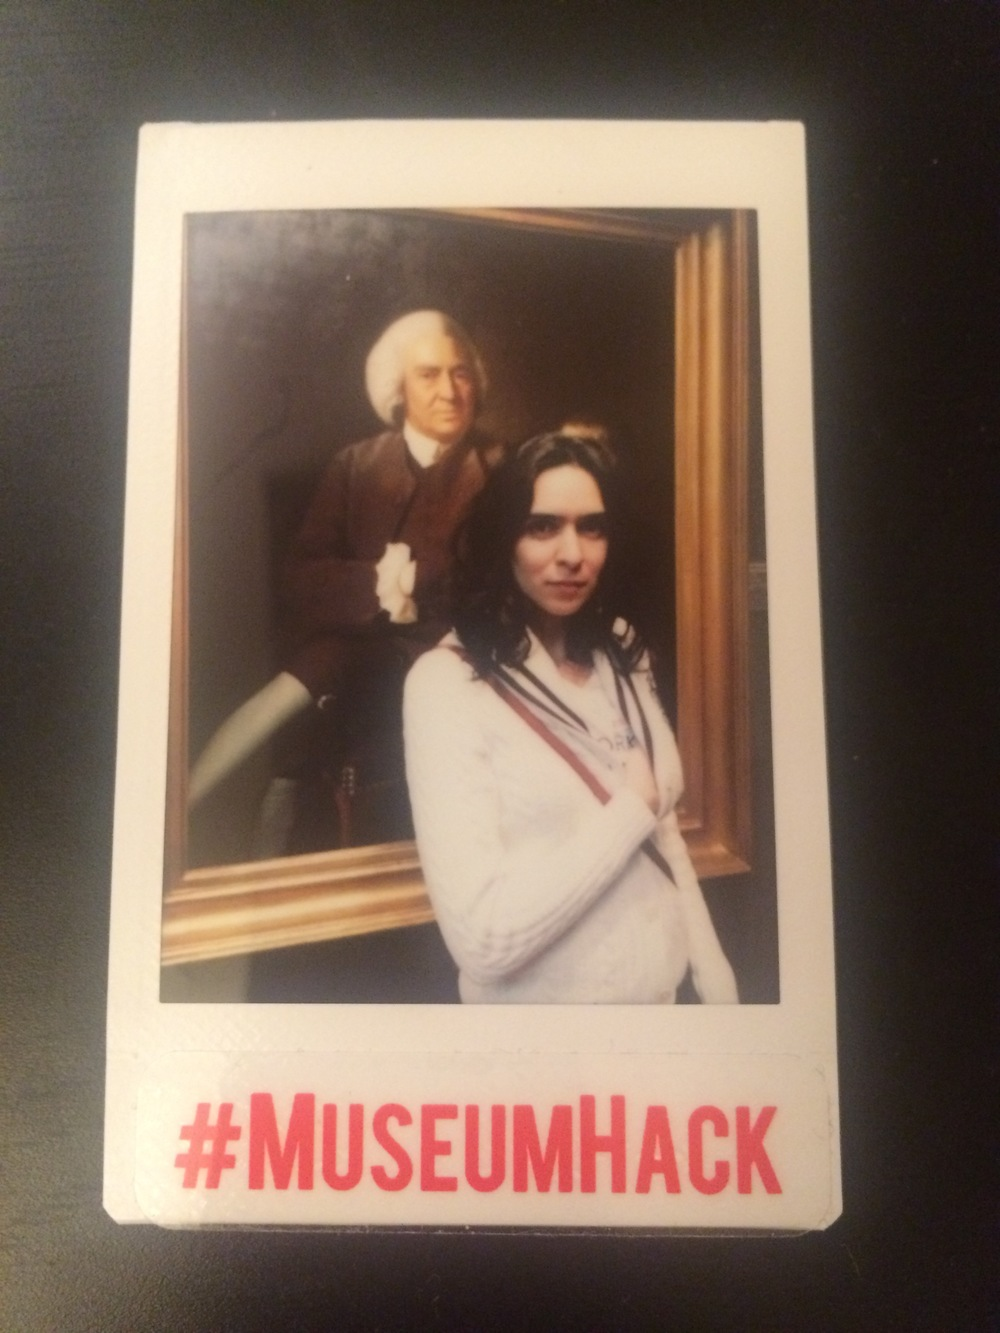 A polaroid taken by my tour guide. This is the portrait I chose for the murderer. Can you see the concealed weapon?!